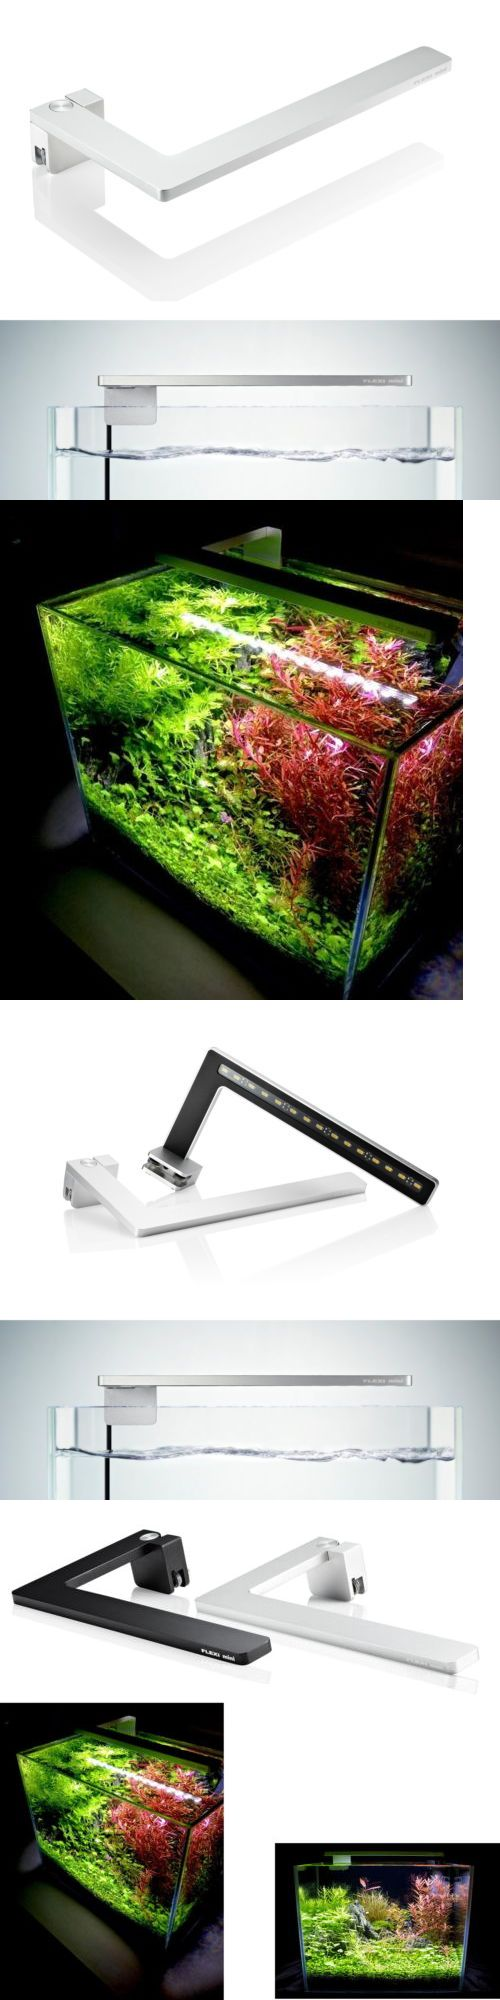 Nano led aquarium fish tank lighting - Animals Fish And Aquariums Azoo Led Flexi Mini Nano Light Full Spectrum Lighting